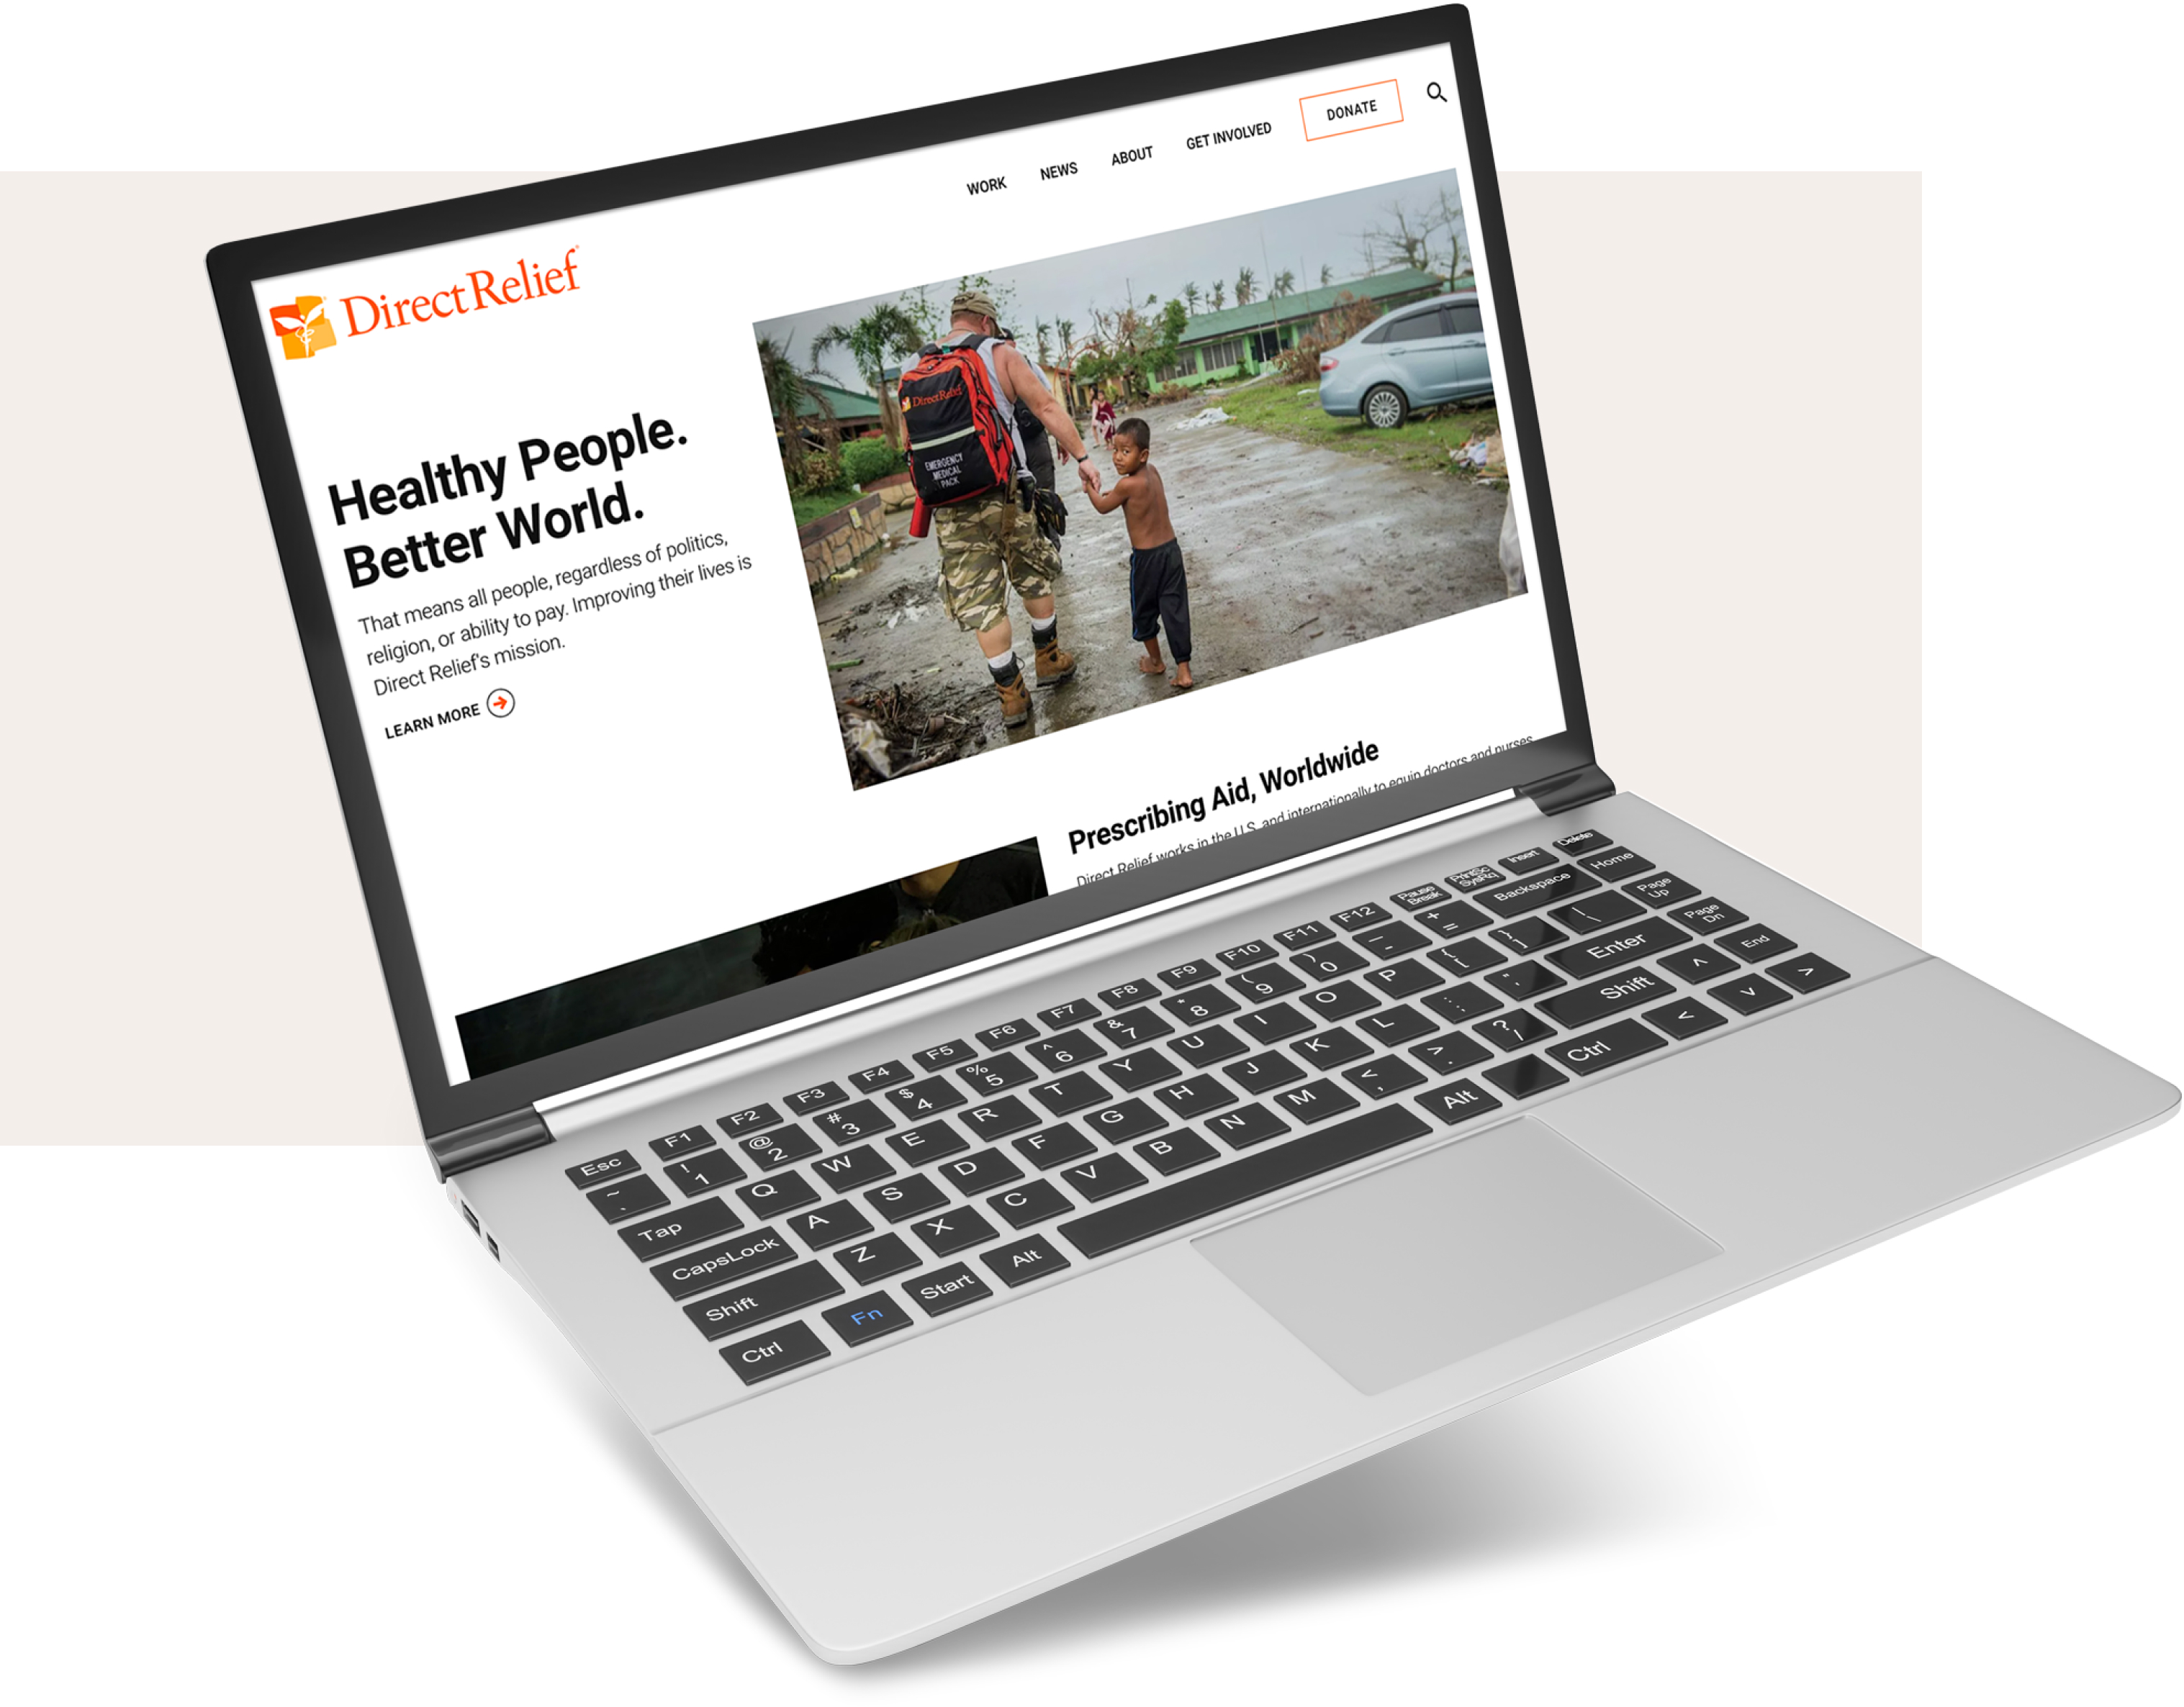 The Direct Relief homepage with a headline and image, displayed on a laptop screen